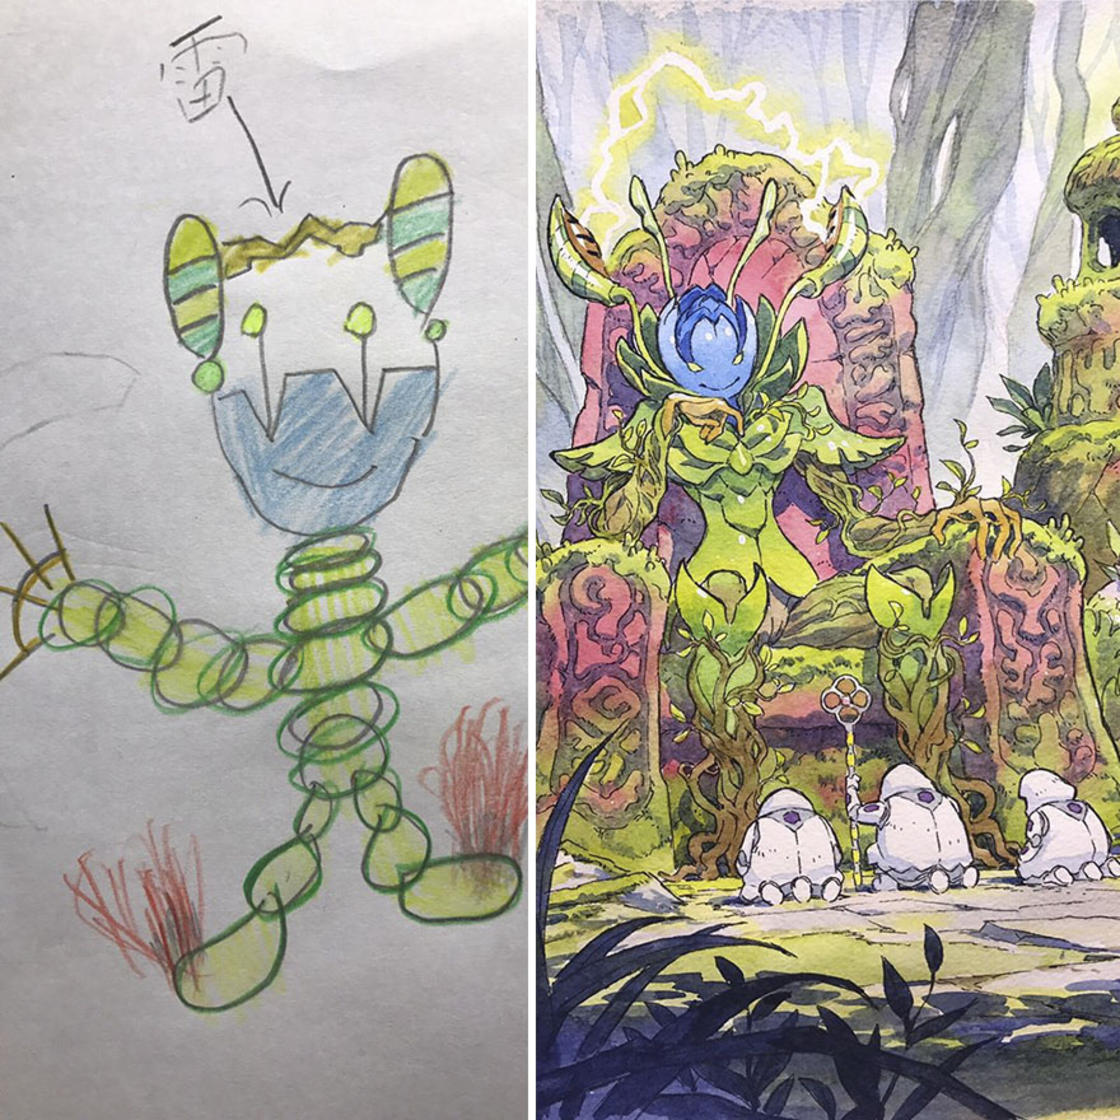 French illustrator continues to turn his kid's drawings into badass characters!